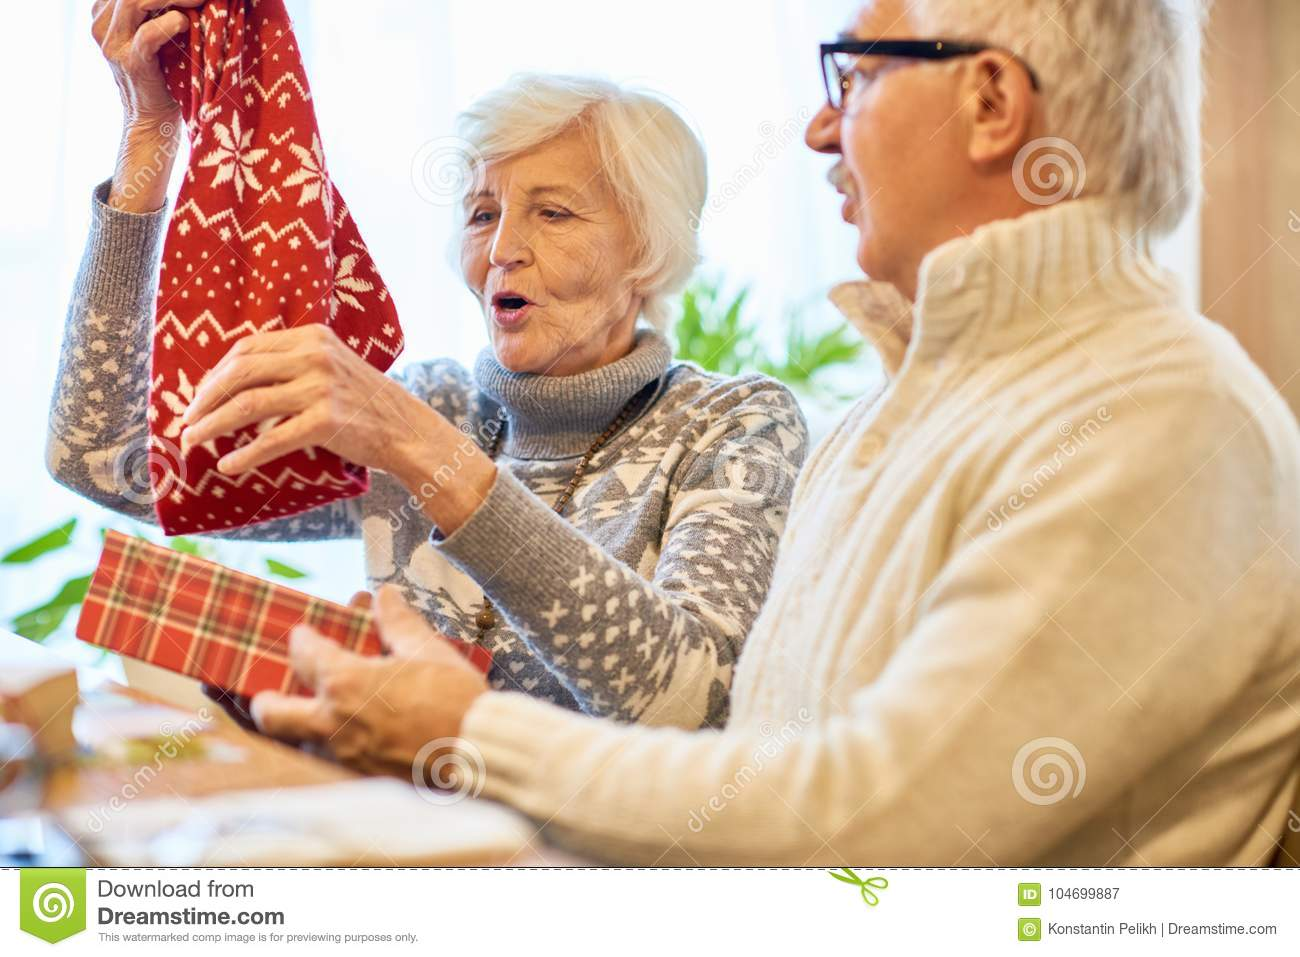 Amazing Christmas Gifts for Grandparents  sc 1 st  Dreamstime.com & Amazing Christmas Gifts For Grandparents Stock Image - Image of ...